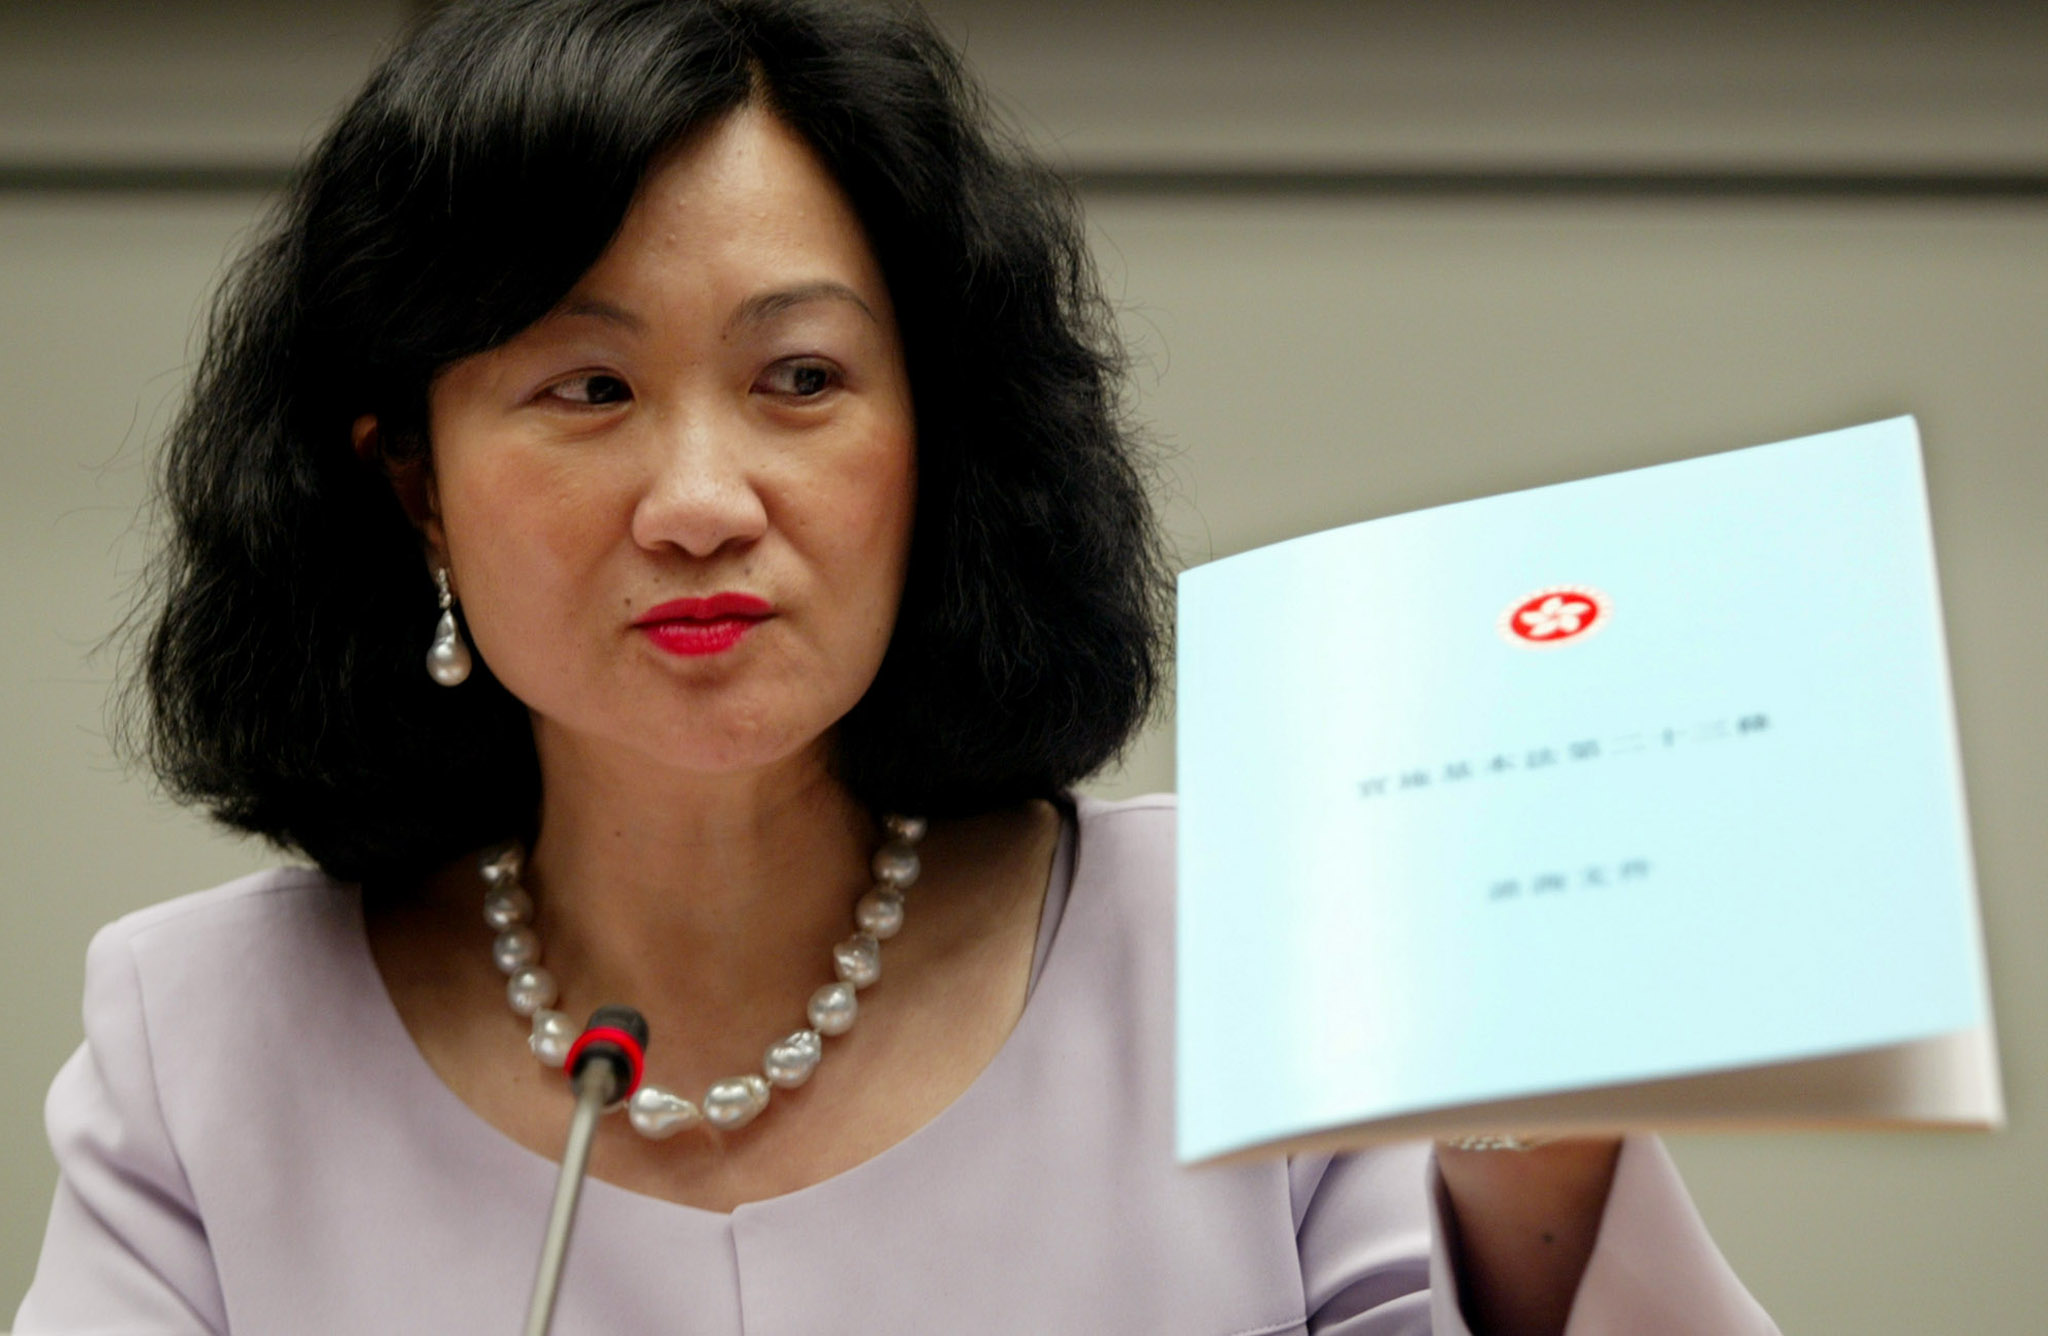 Hong Kong's Secretary for Security Regina Ip holds a consultation document on a planned anti-subversion law during a news conference in Hong Kong September 24, 2002. The territory unveiled the proposals on Tuesday that rights groups fear could pose the most serious threat to civil liberties since this former British colony returned to Chinese rule.